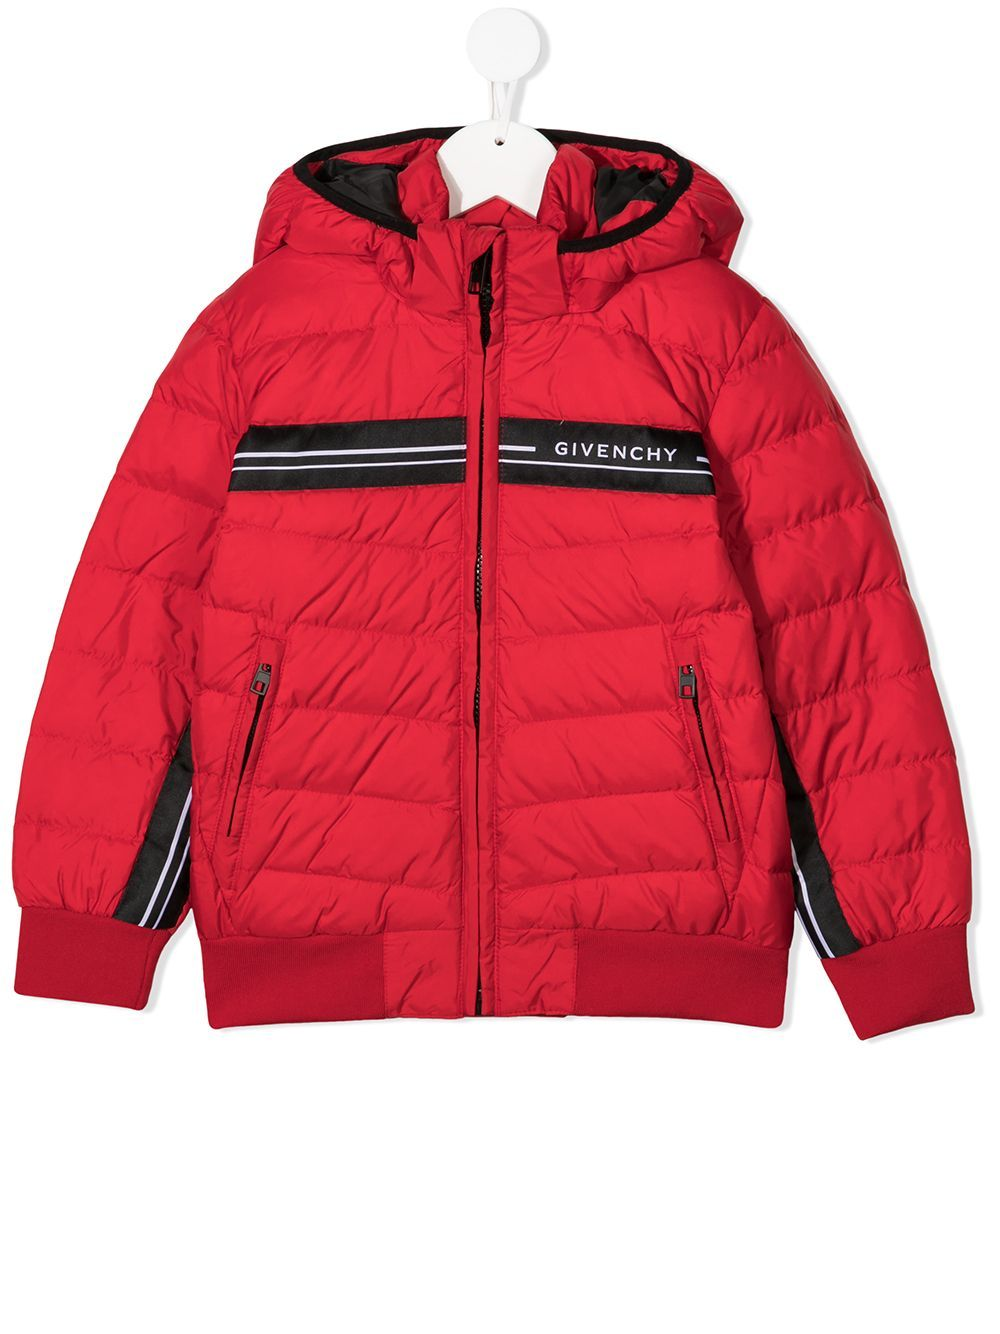 GIVENCHY KIDS Tape Logo Coat Red - Maison De Fashion